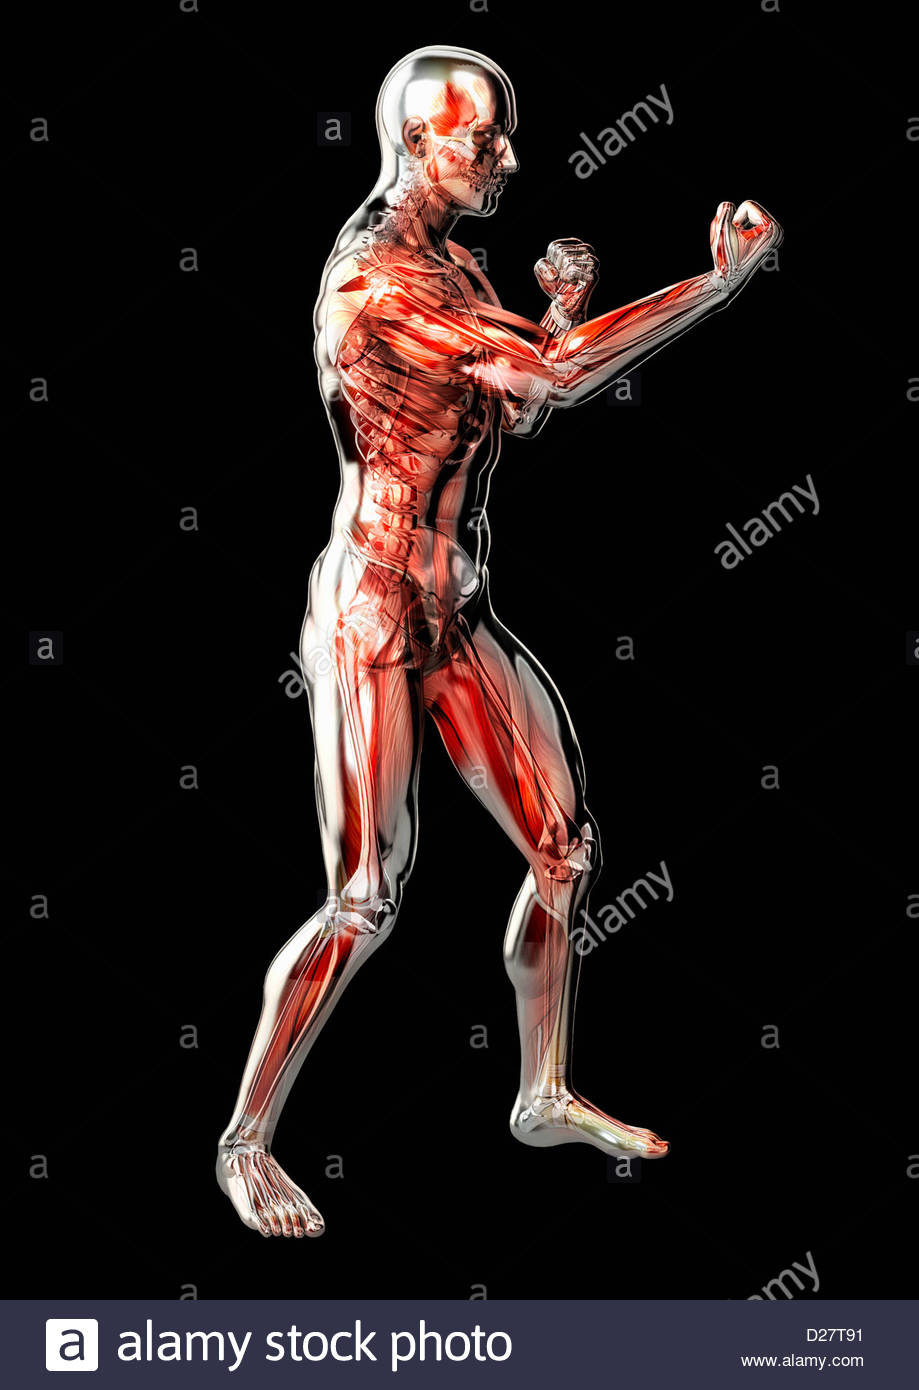 Male anatomical model in fighting stance on black background - Stock Image